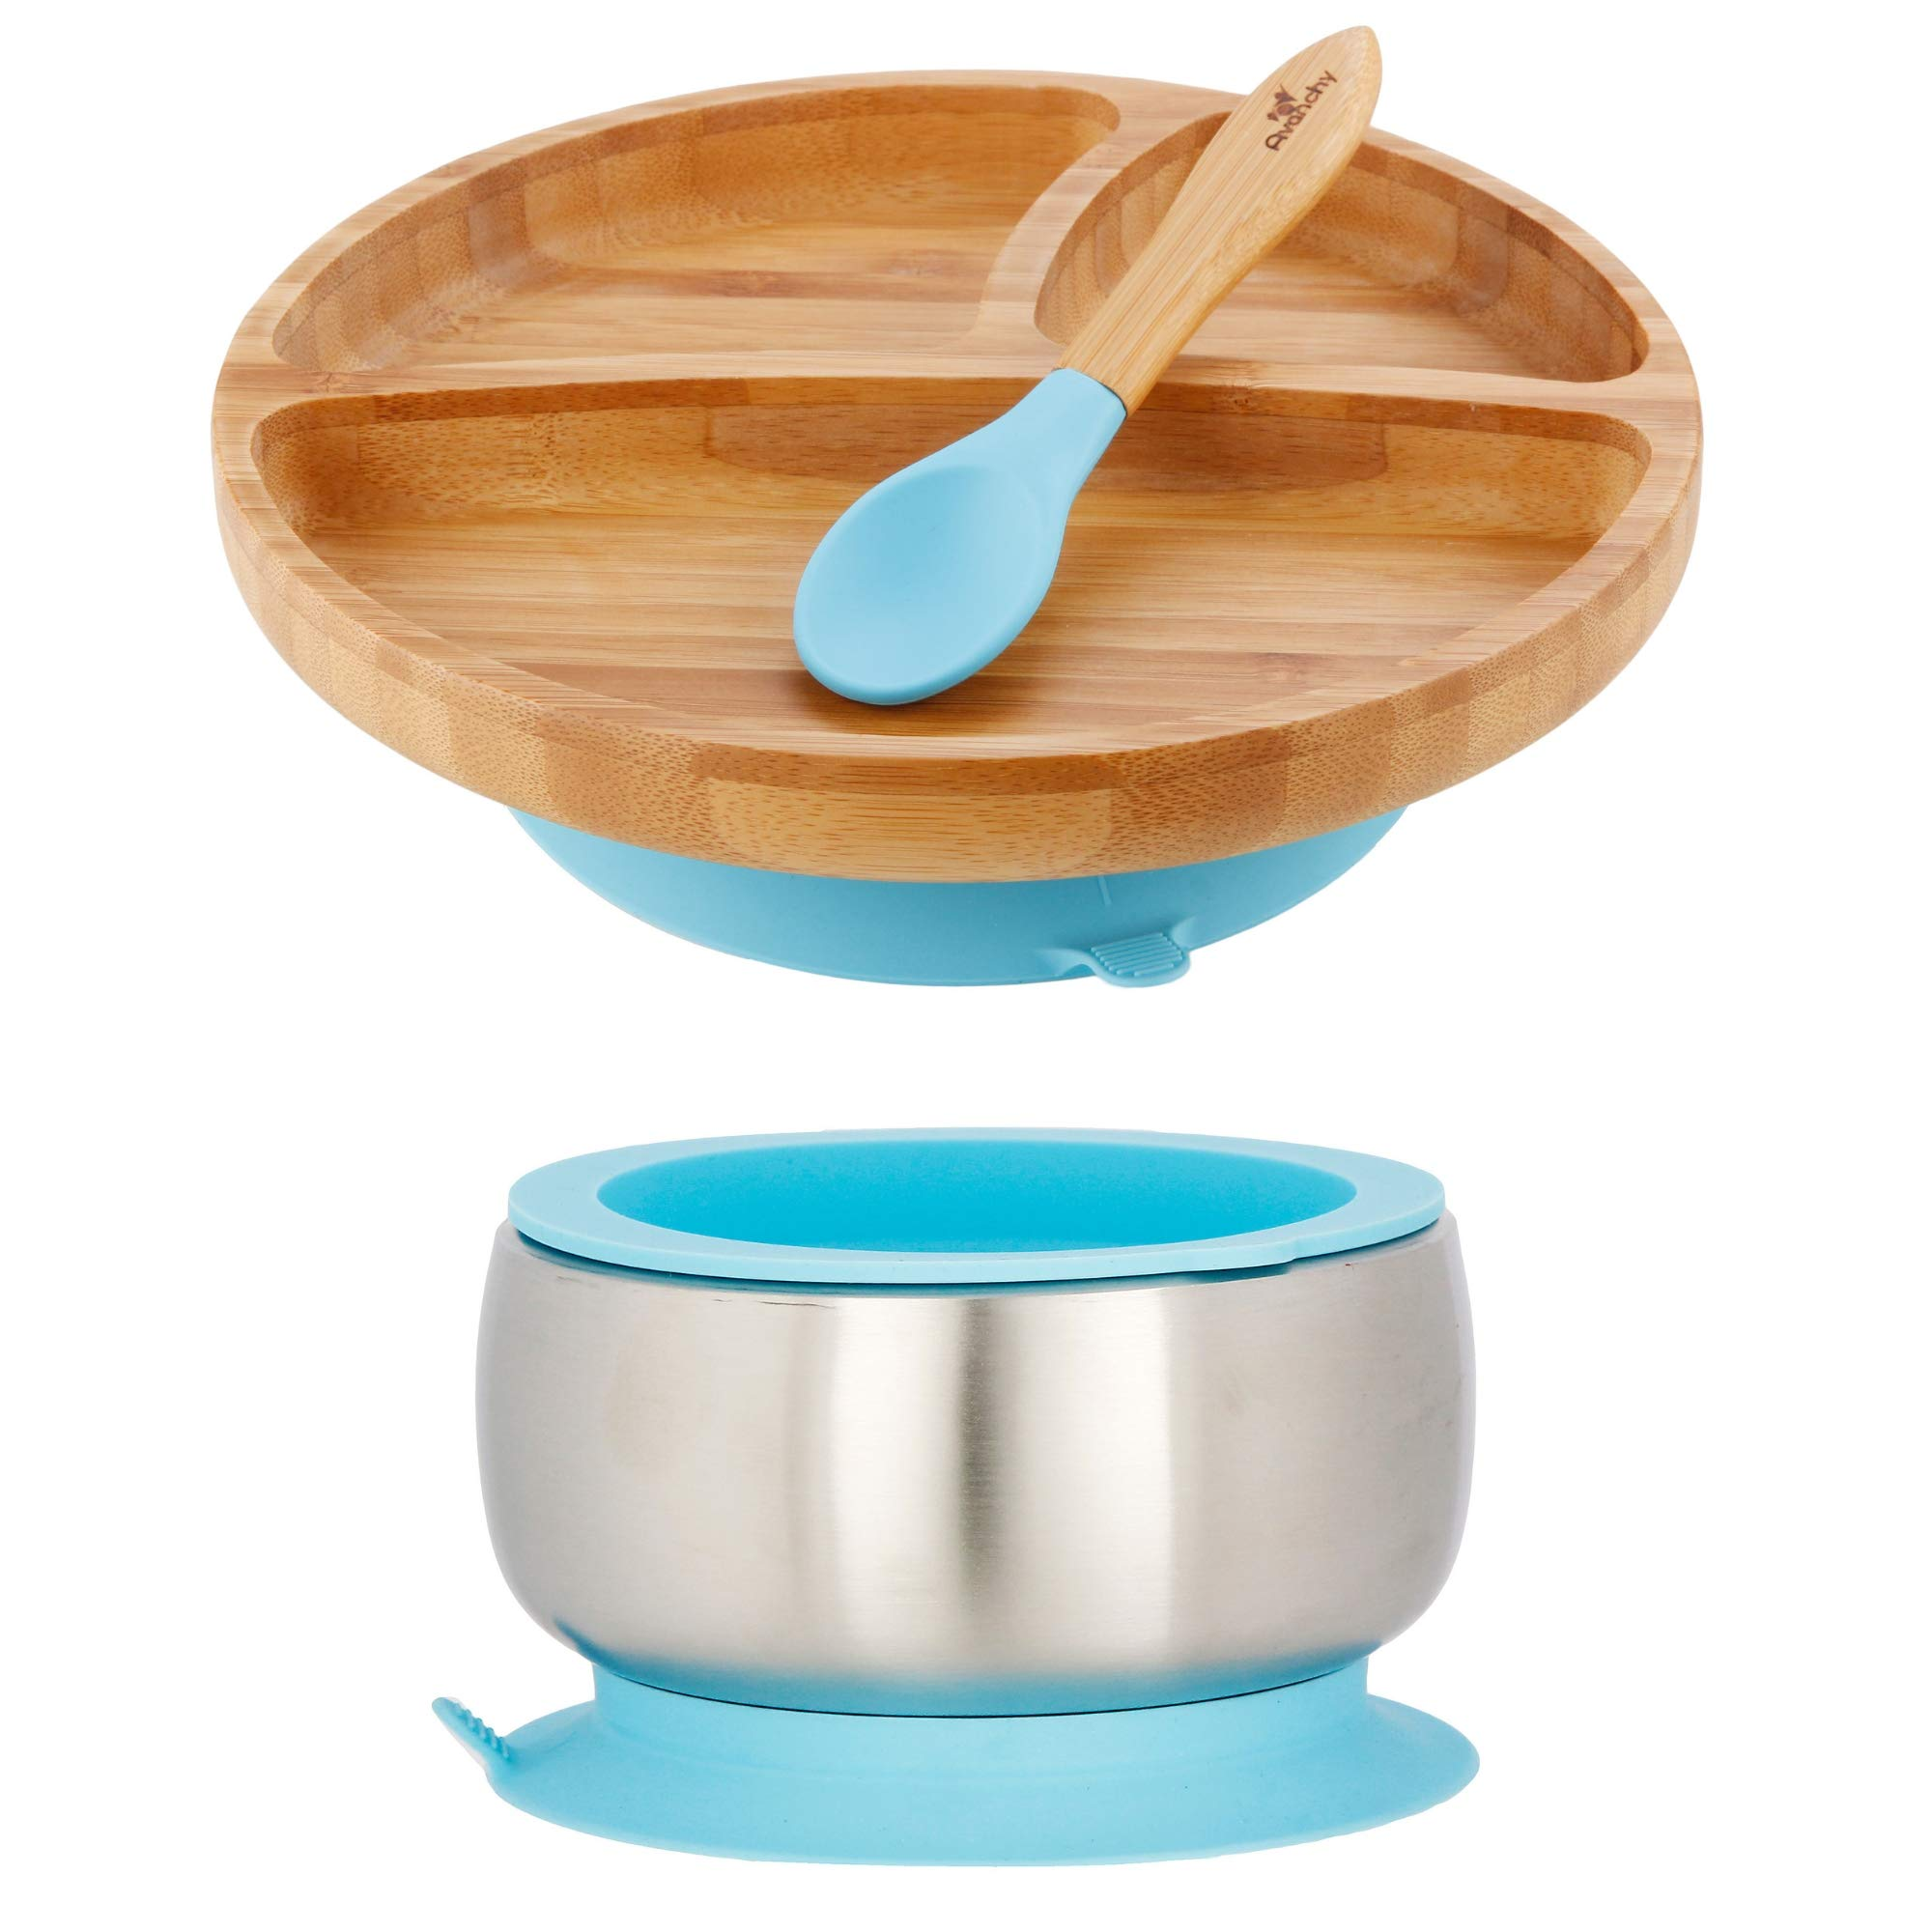 Avanchy Baby Toddler Feeding Bamboo Plate & Stainless Steel Bowl - Stay Put Suction Divided Plates + Baby Spoon + Lid (Blue Sustainable Bundle)